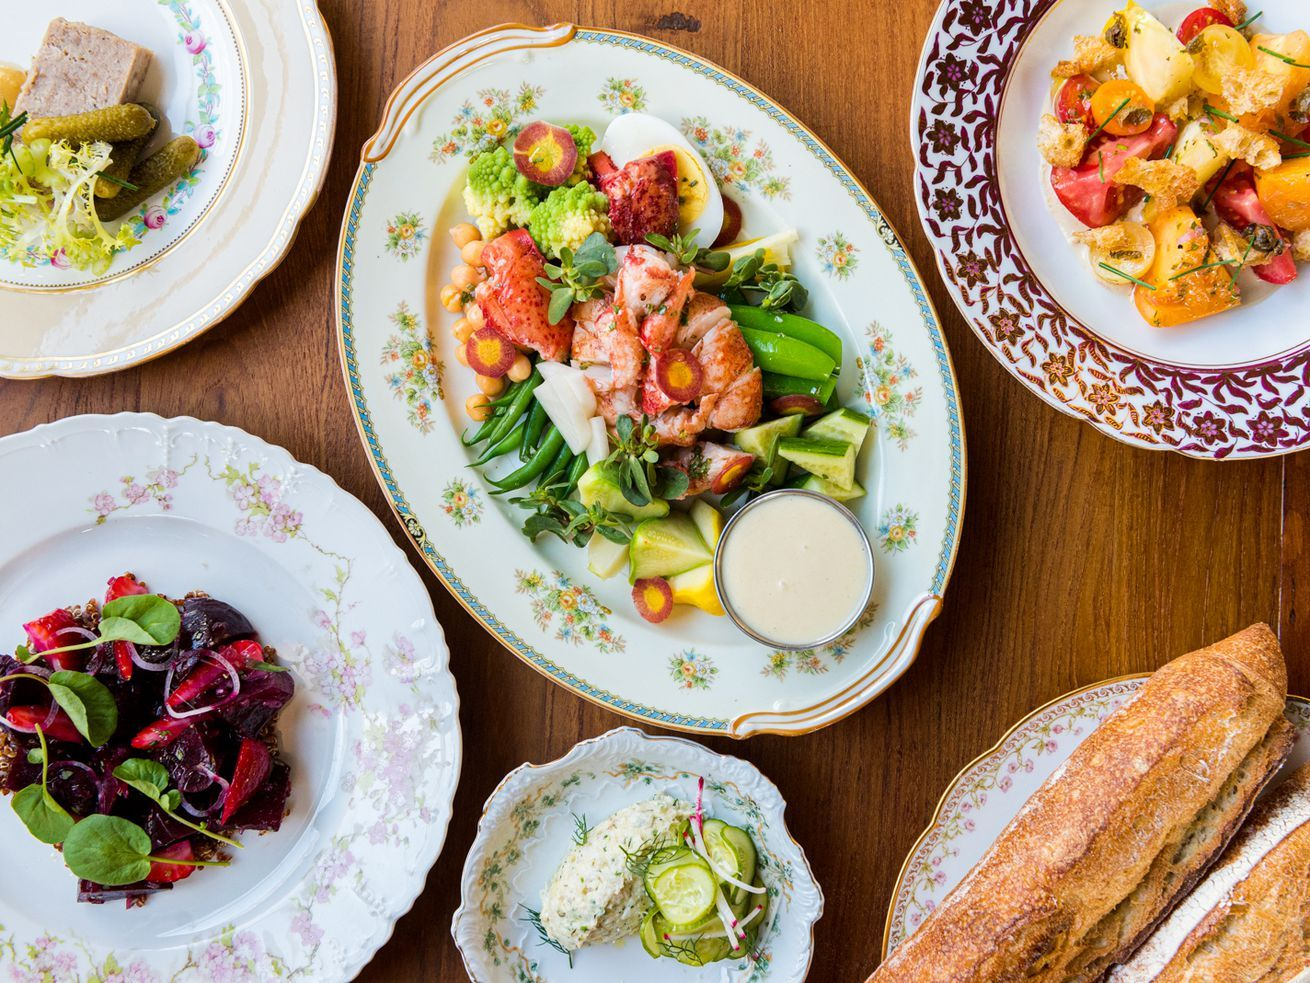 Step Inside The Warm Charm Of Routier The B Patisserie Team S French Restaurant In 2020 French Restaurants Seasonal Salad Cooked Vegetables